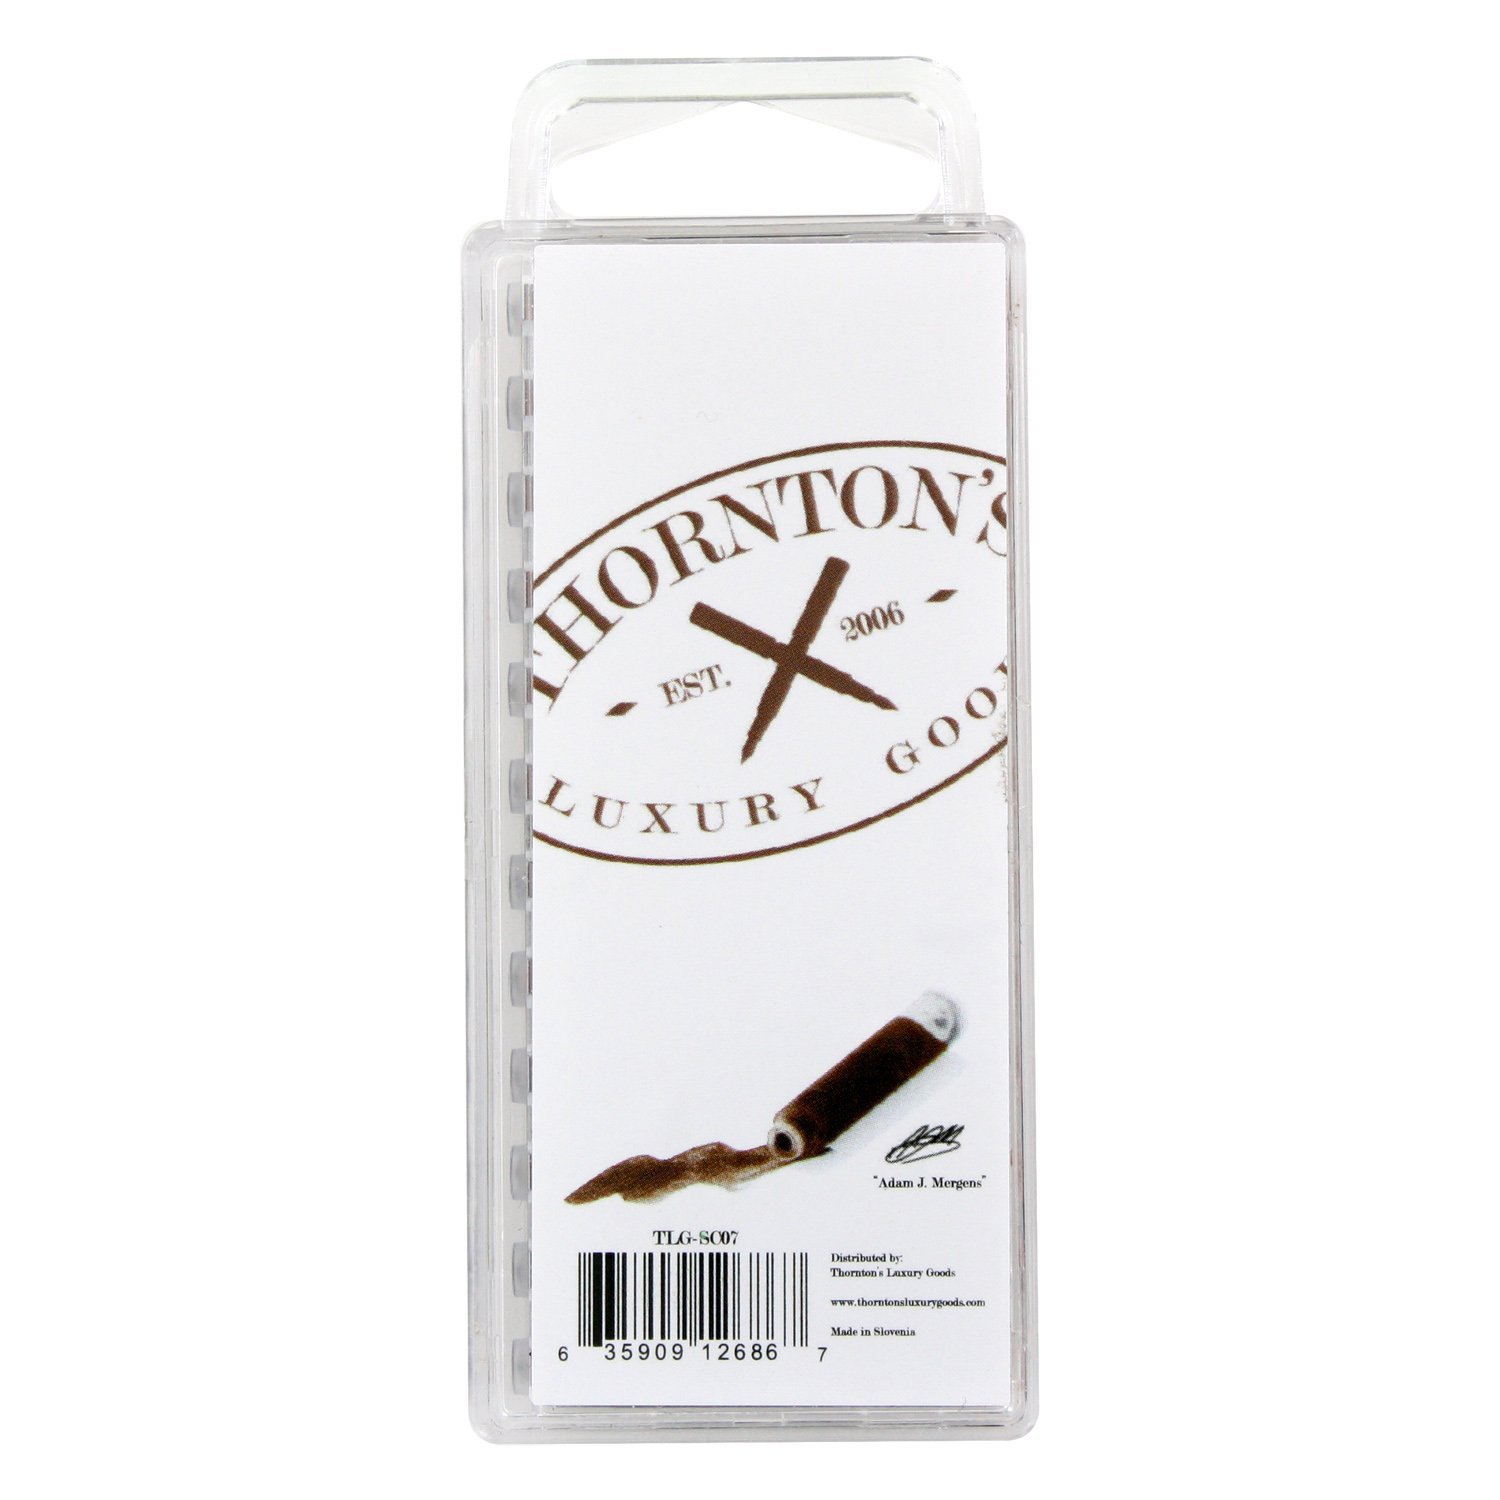 Thornton's Short Standard Fountain Pen Ink Cartridges, Brown Ink, Pack of 144 by Thornton's Luxury Goods (Image #3)